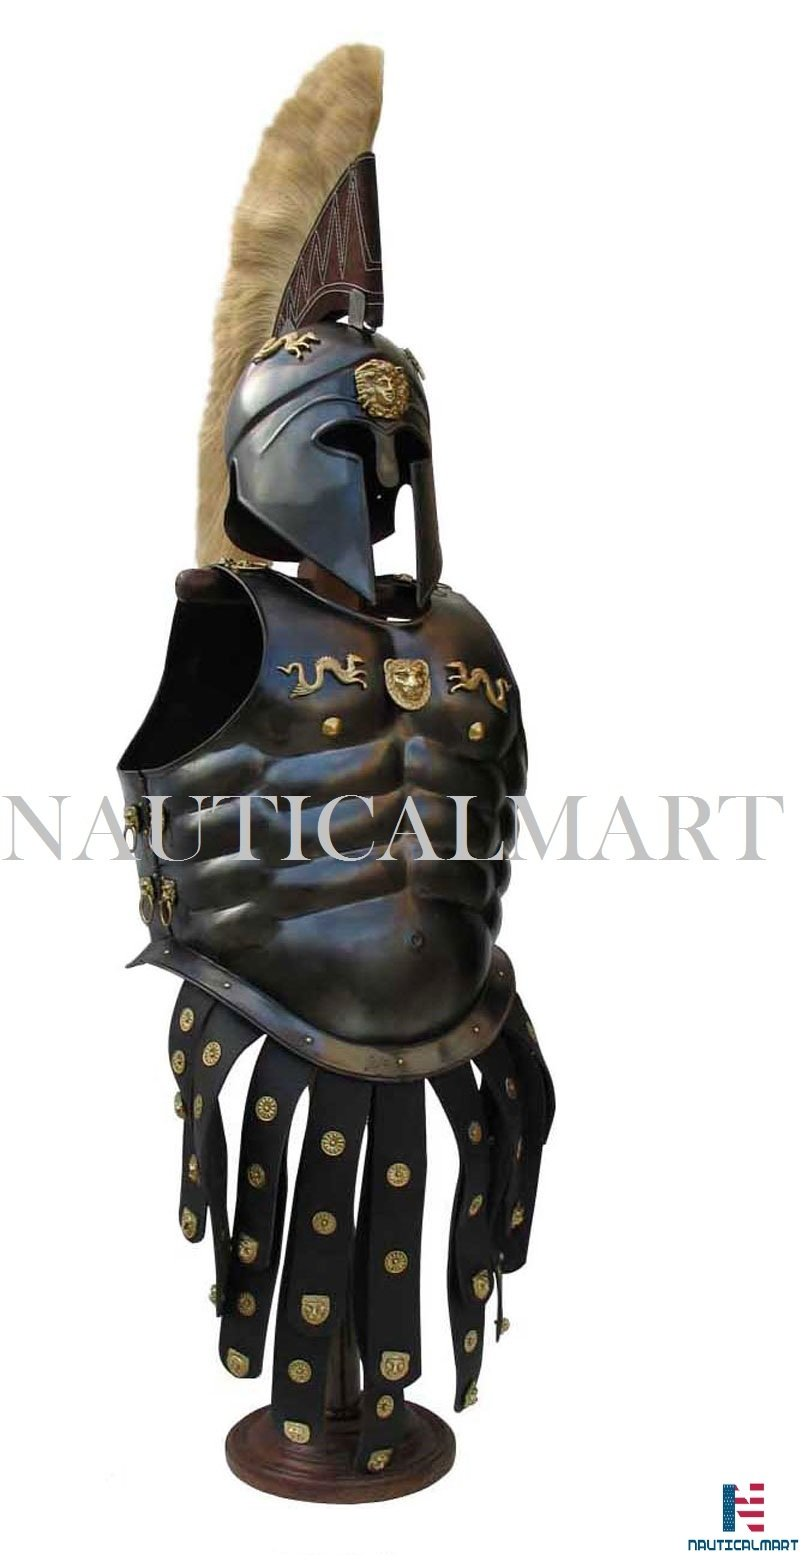 NAUTICALMART Greek Royal Muscle Armor Cuirass With corinthian Helmet Halloween Costume